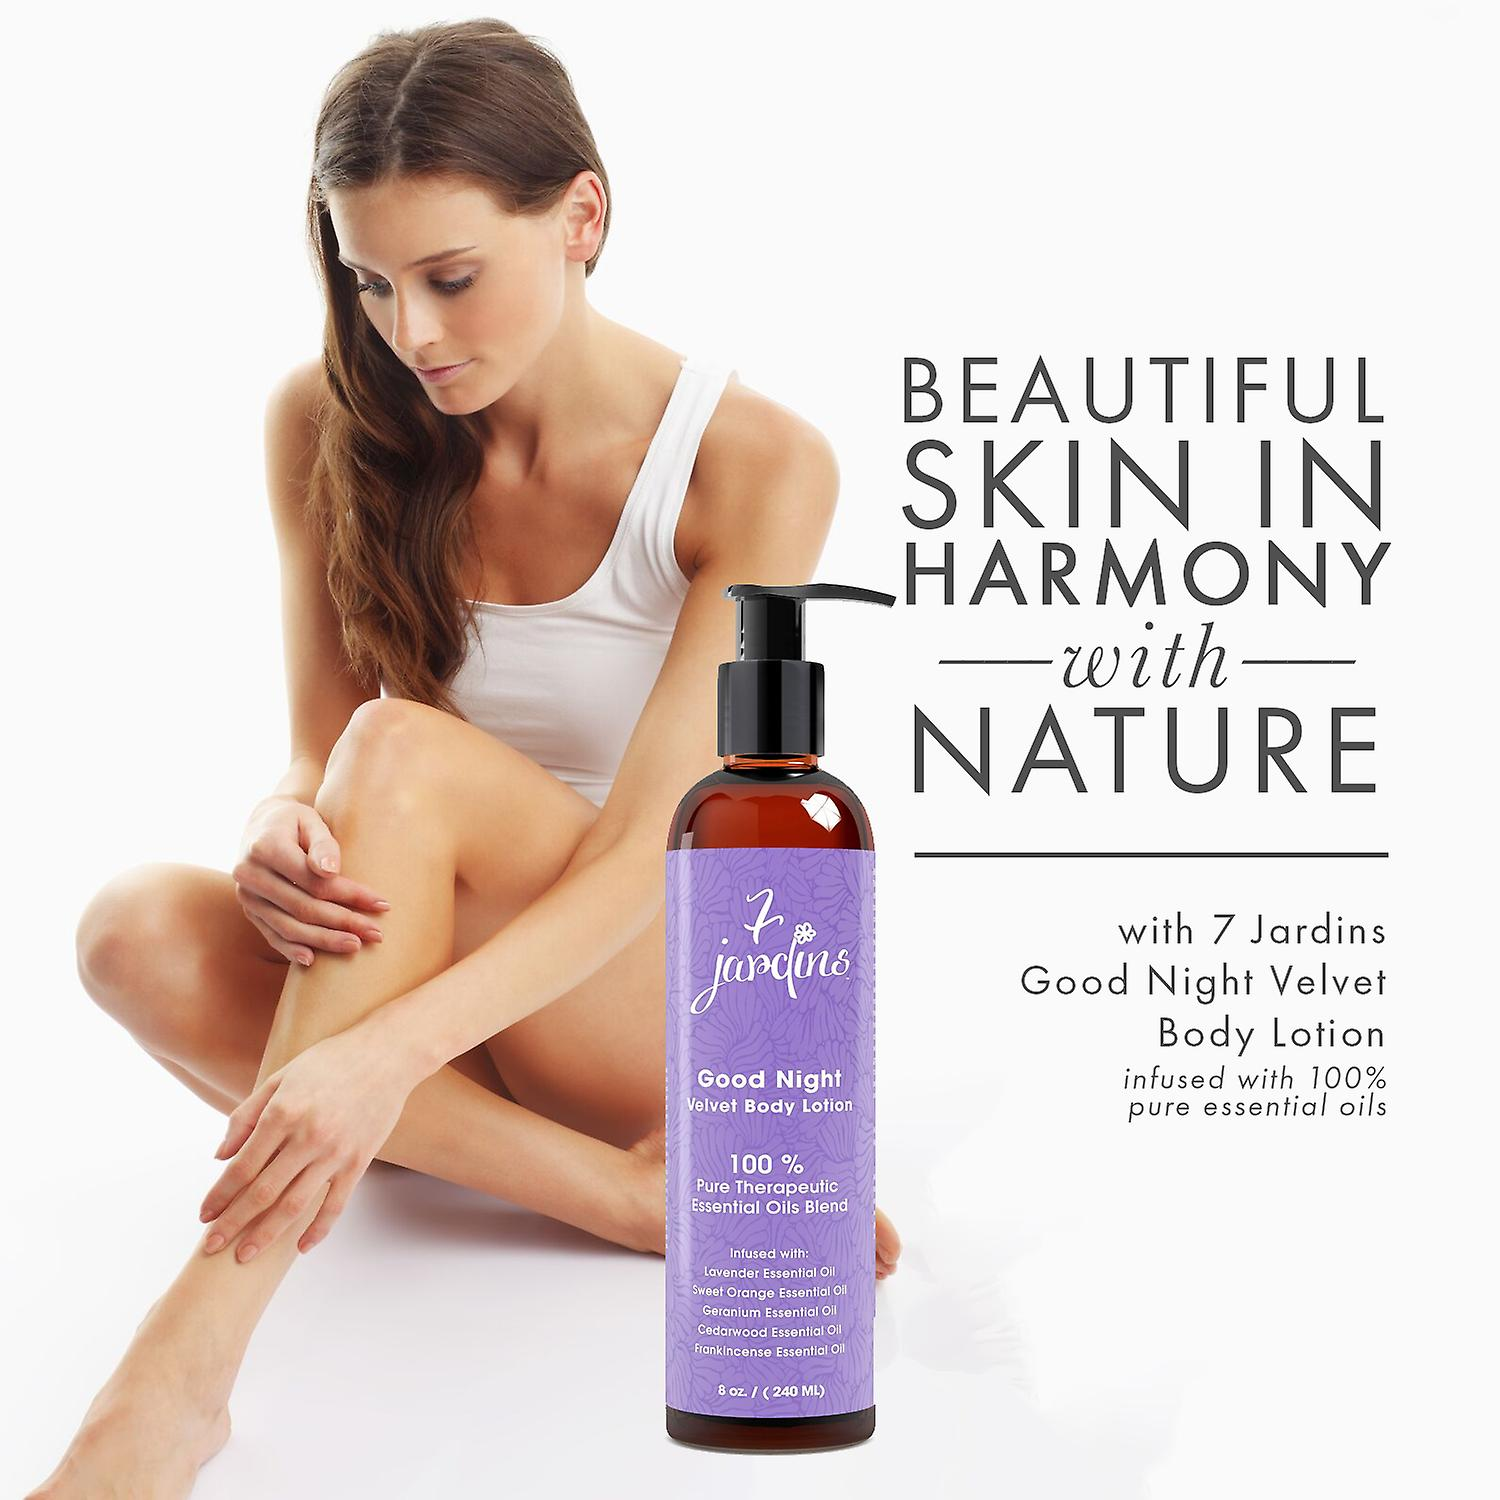 7 Jardins Good Night Velvet Body Lotion - Daily Body Moisturizer for All Skin Types Enriched with Lavender, Sweet Orange, Geranium, Cedarwood & Frankincense Essential Oils - 100% Safe & Sulfate Free